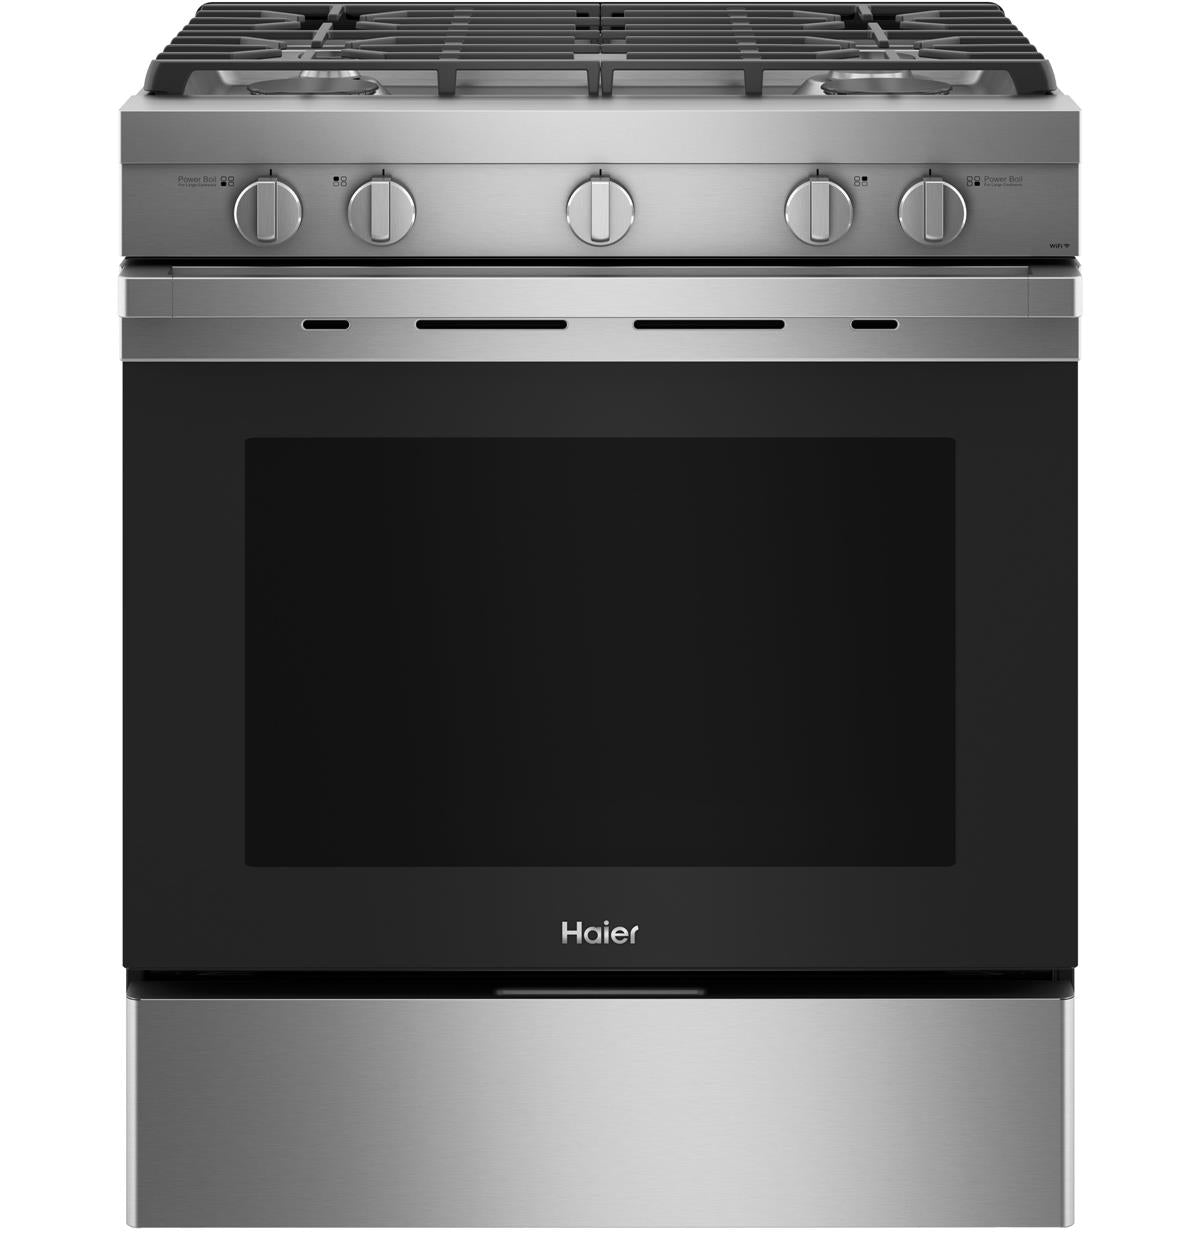 "Haier 30"" Smart Slide-In Gas Range with Convection QGSS740RNSS"